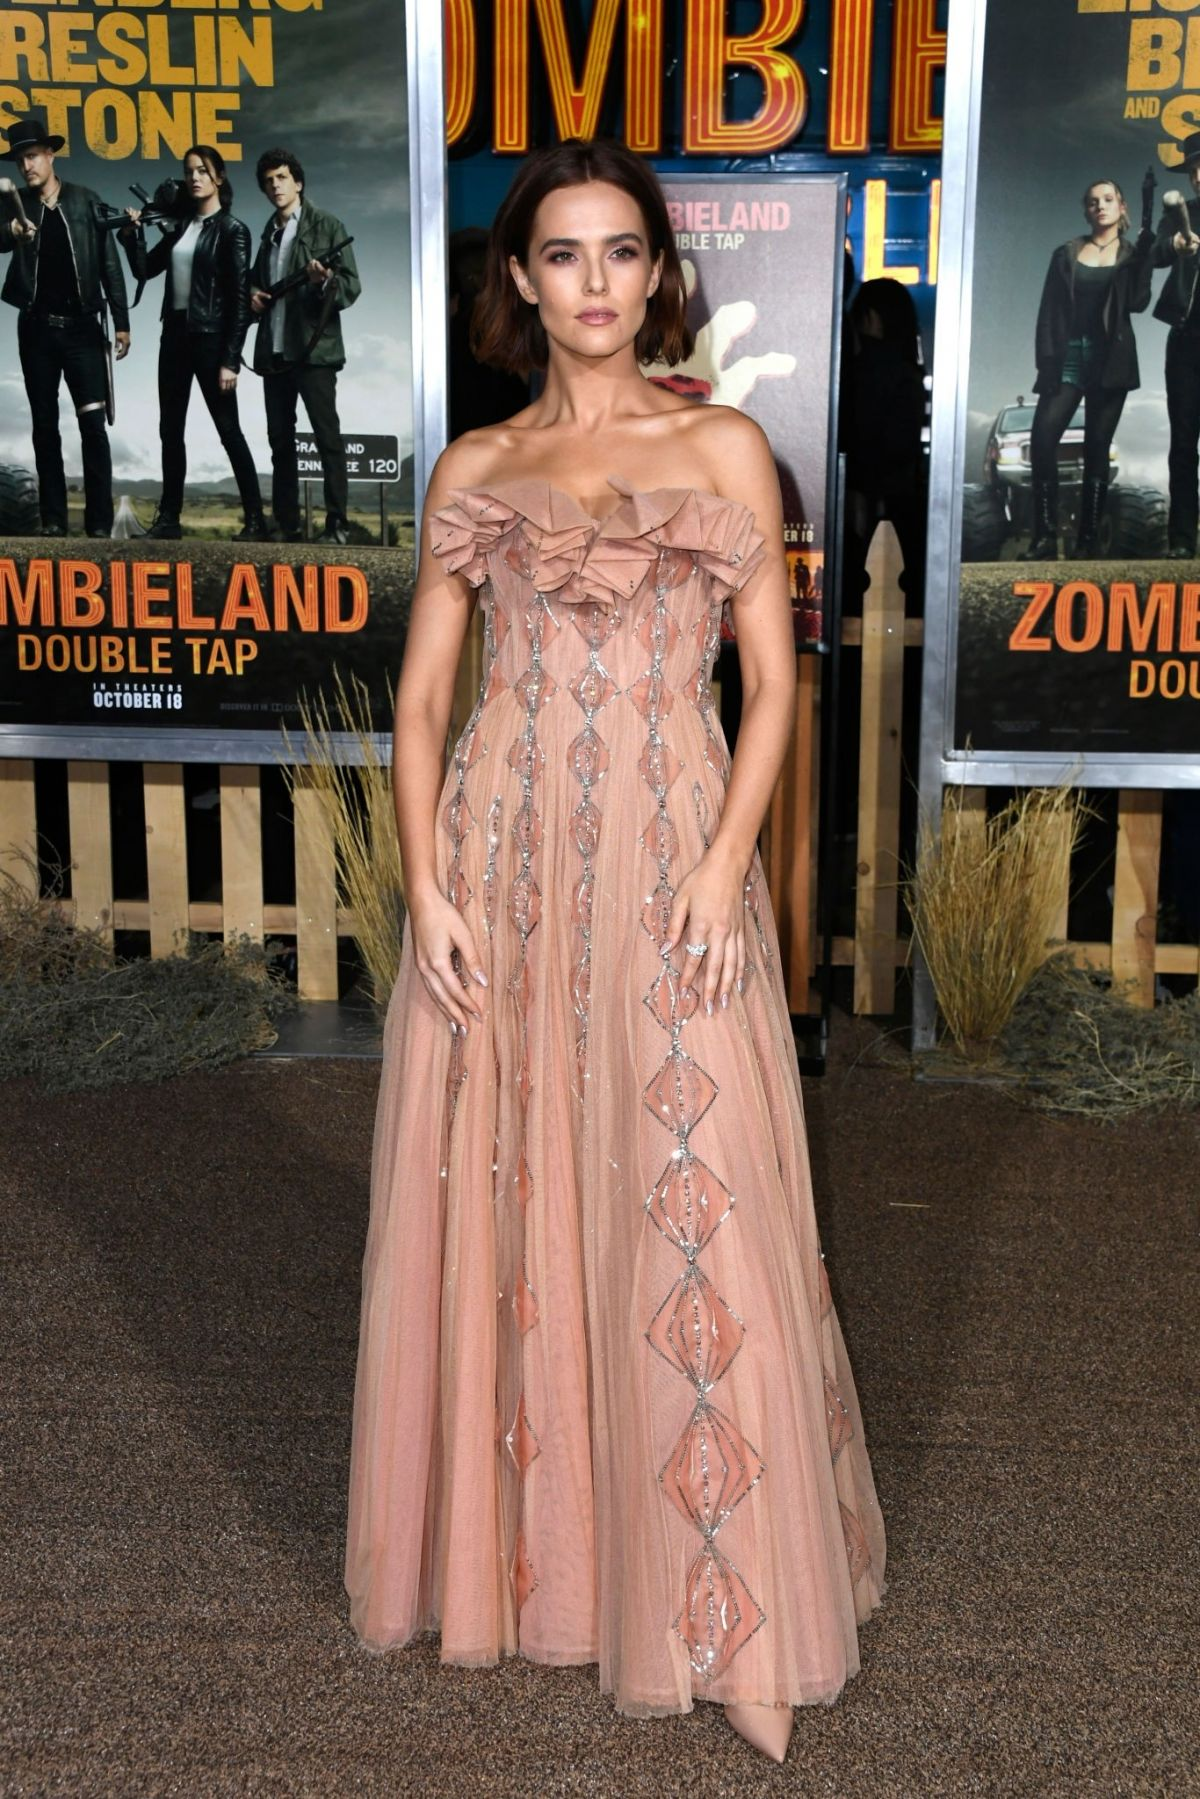 Zoey Deutch At Zombieland Double Tap Premiere In Westwood